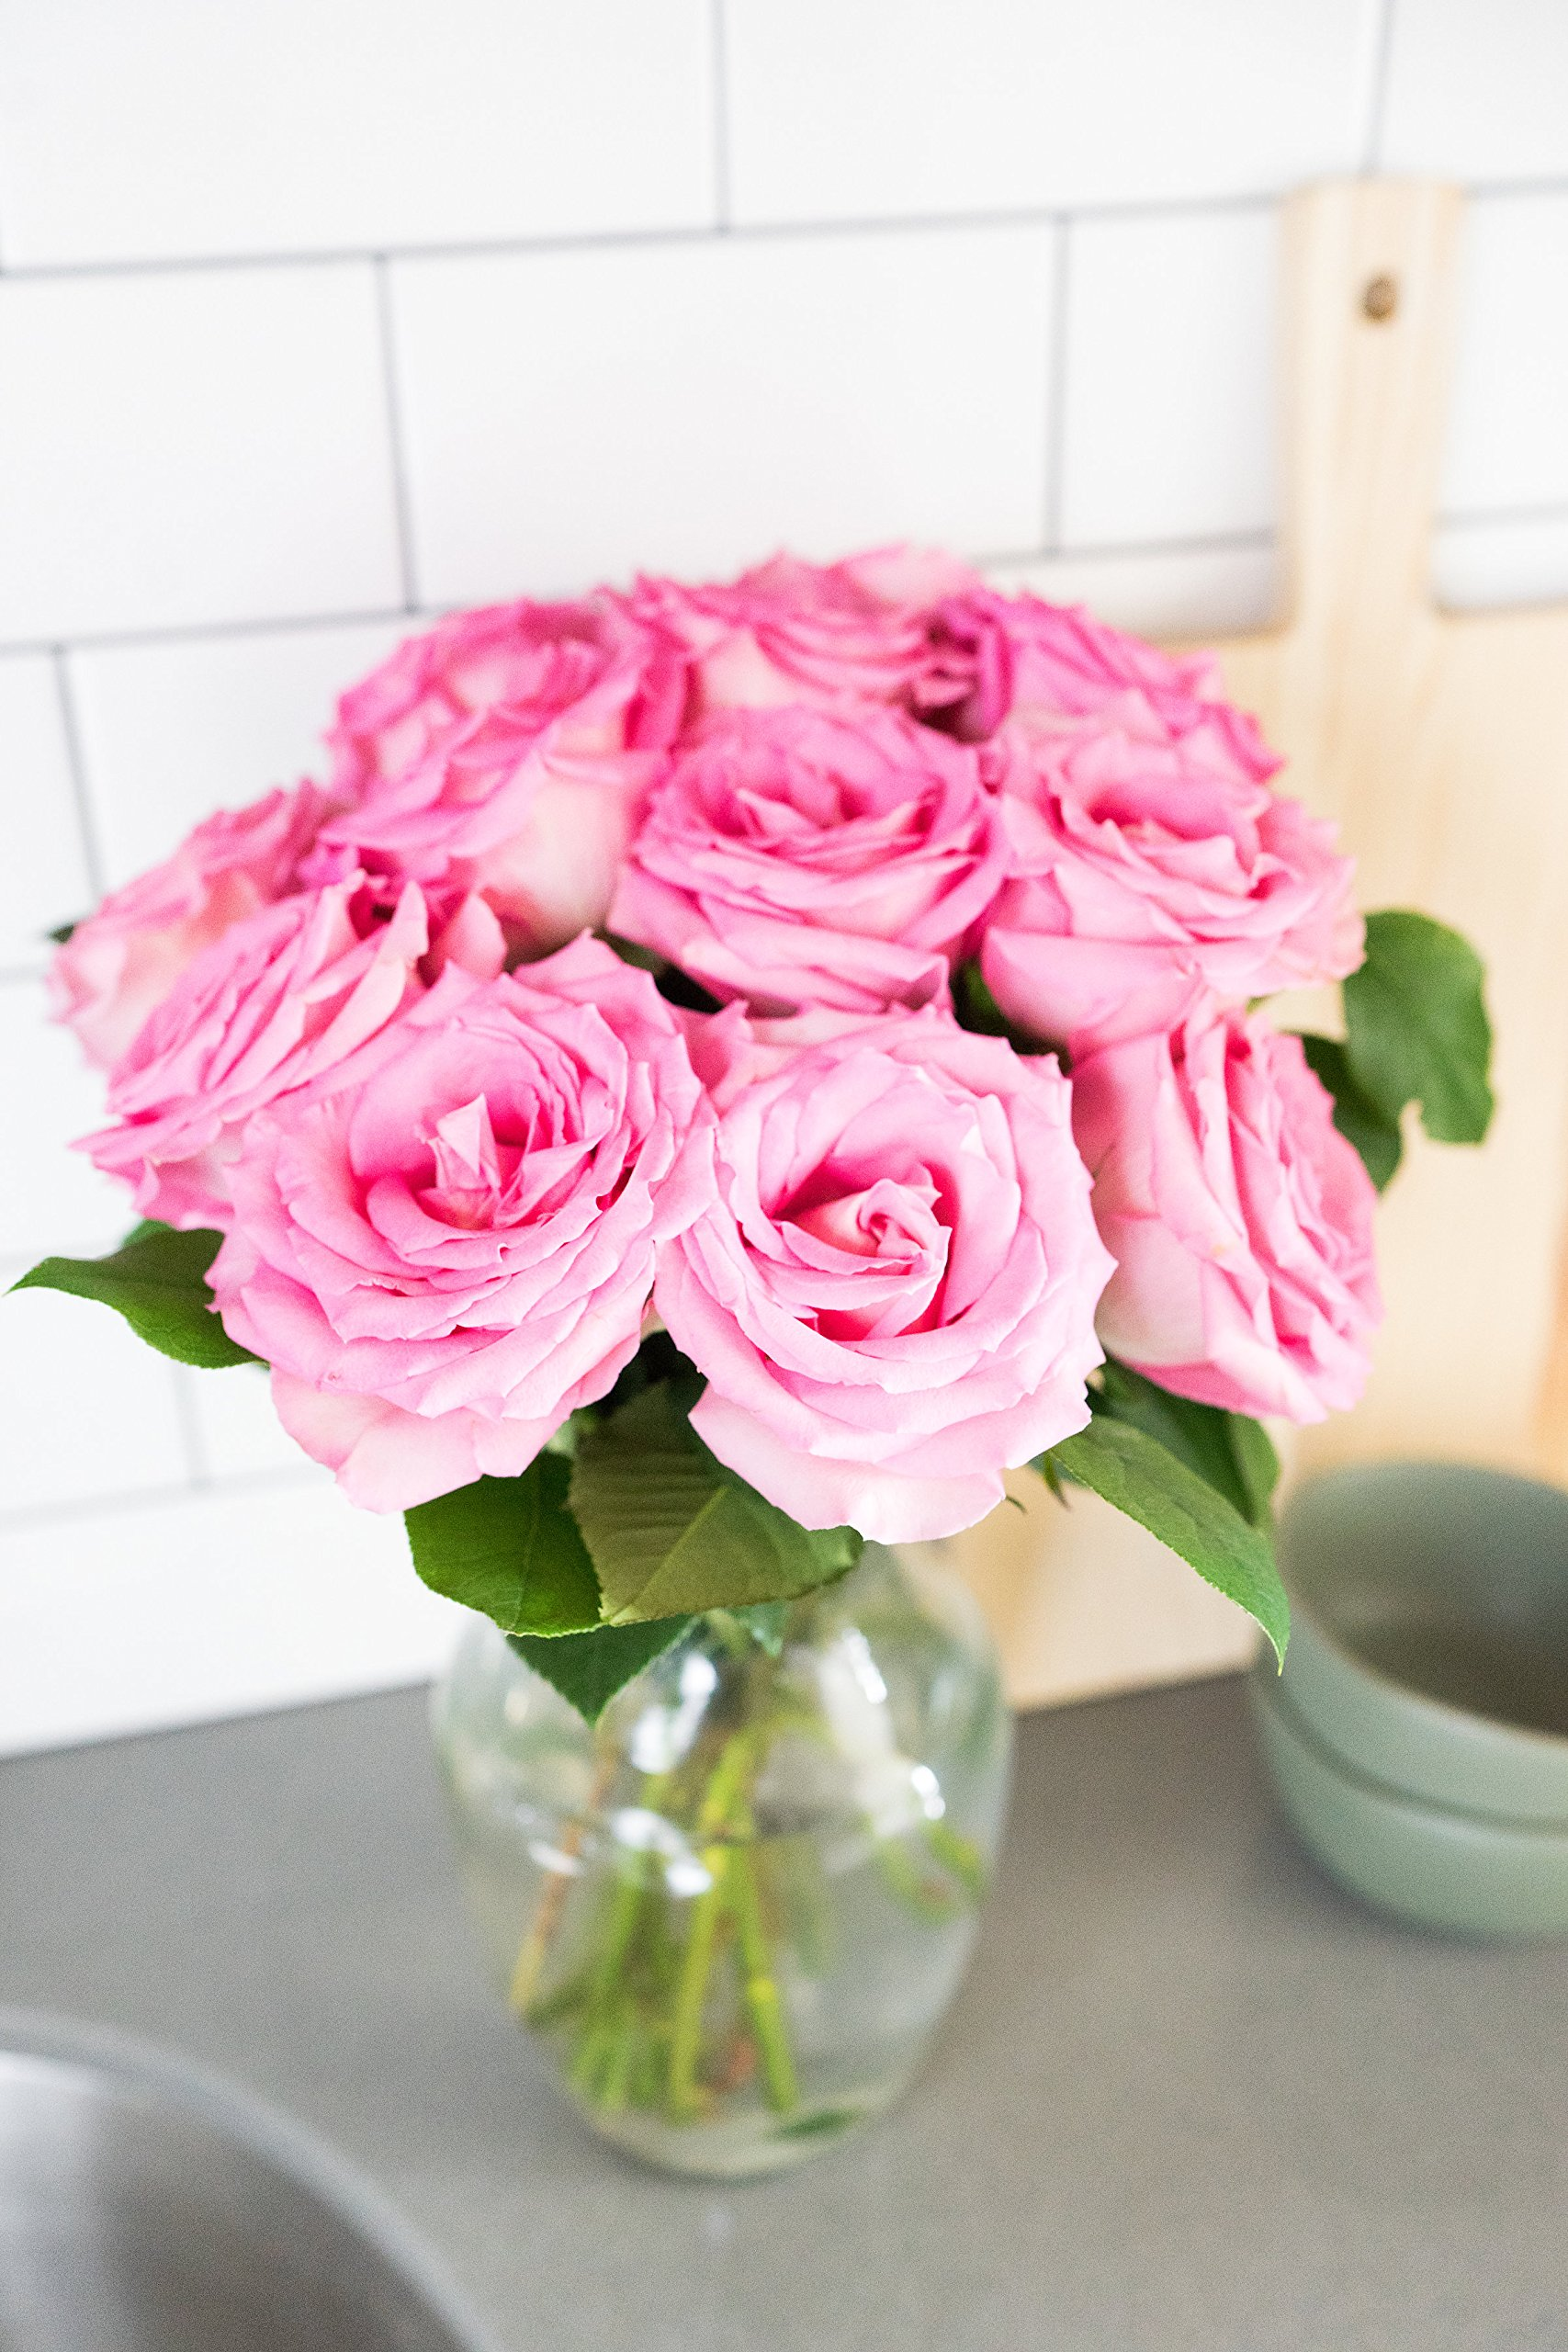 Flowers - One Dozen Light Pink Roses (Free Vase Included) by From You Flowers (Image #3)